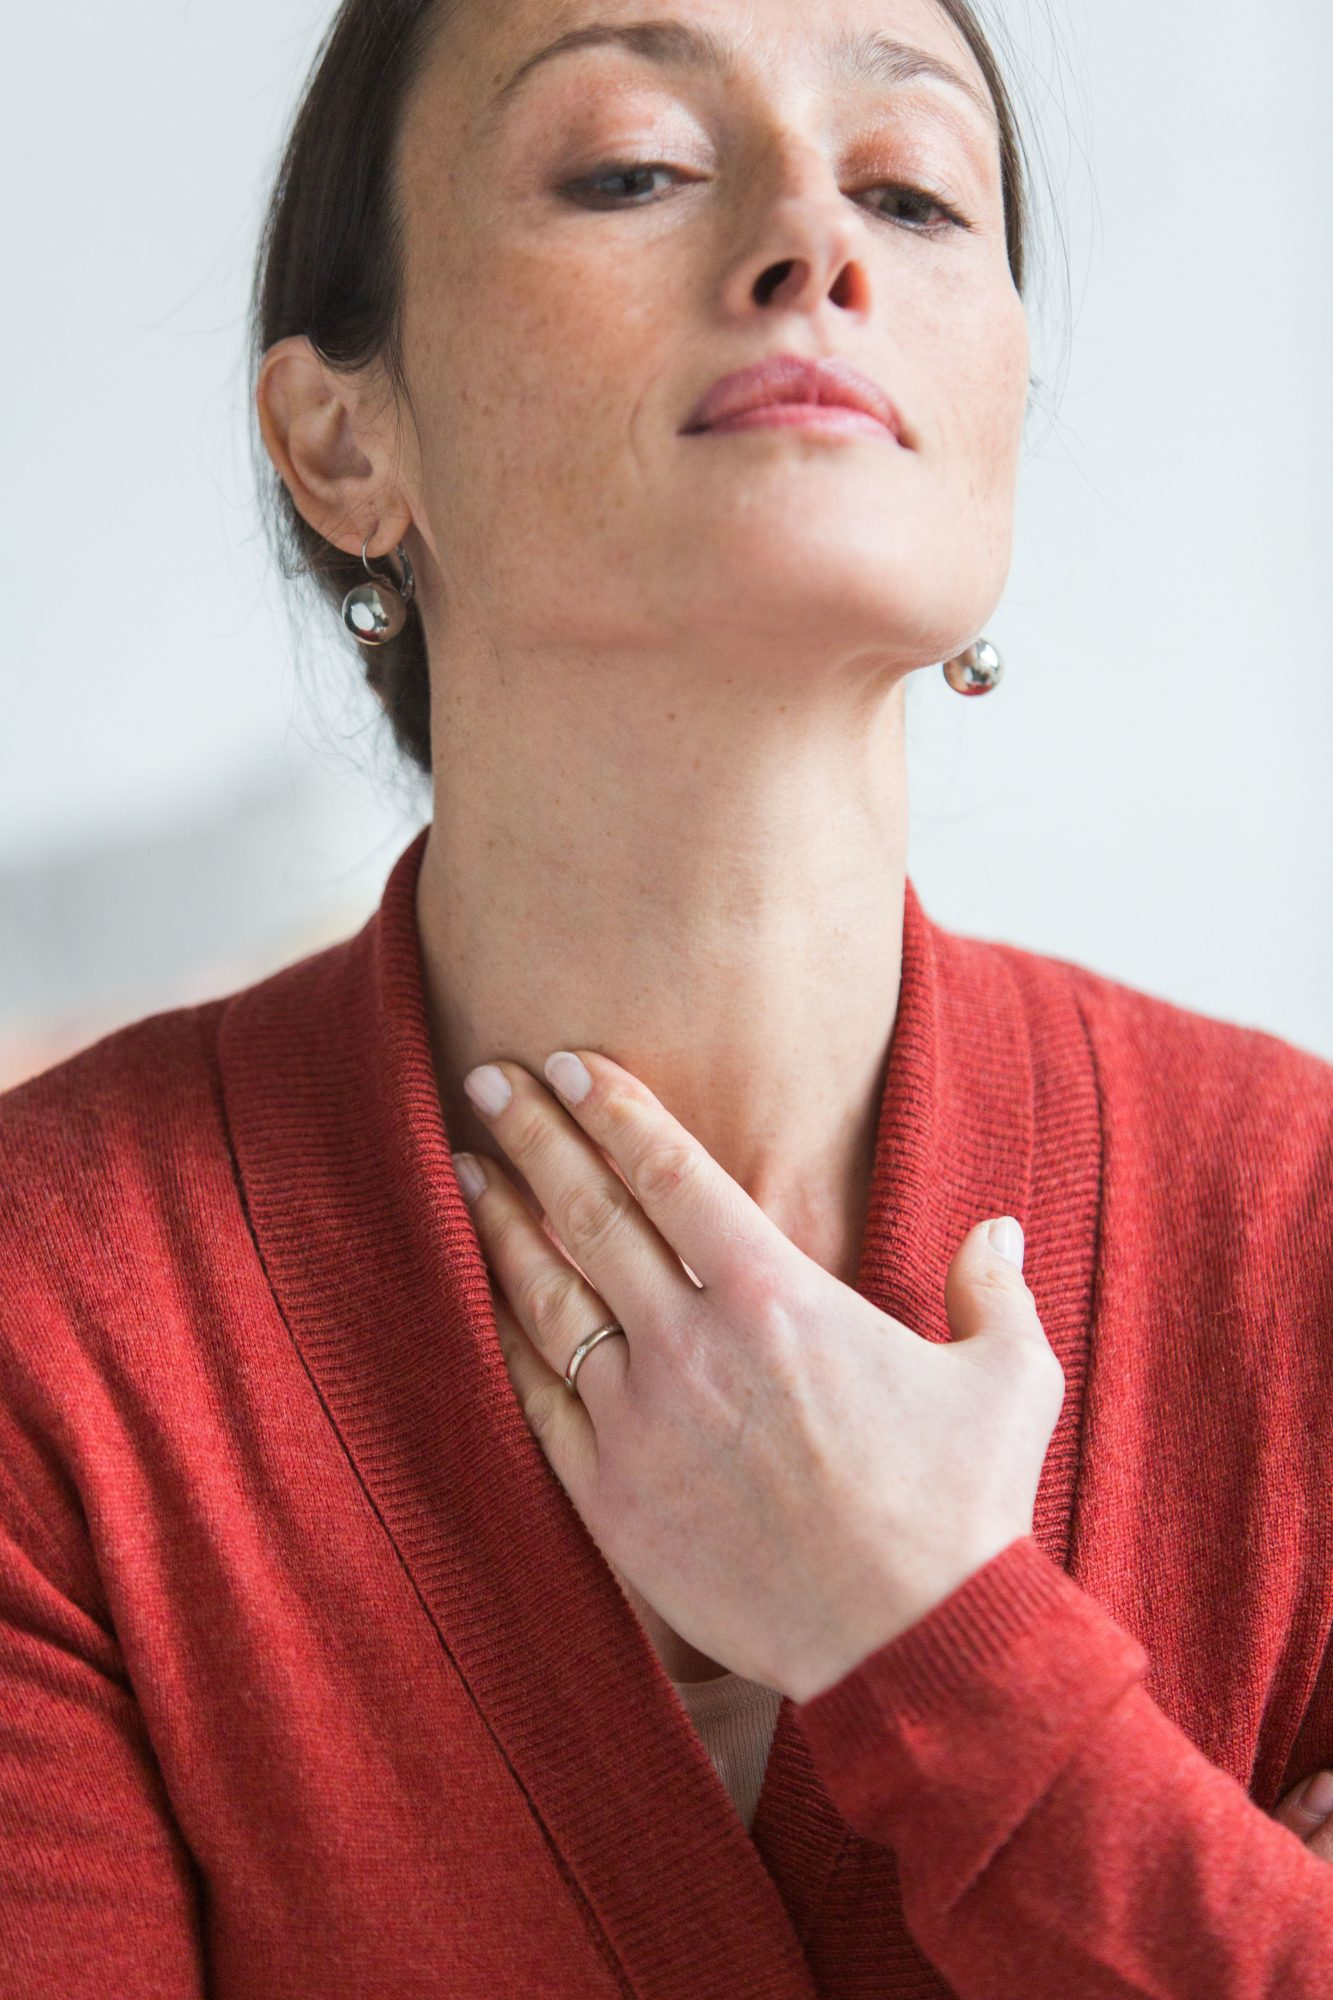 Frequent Headaches May Raise Your Risk for Thyroid Disease - Health